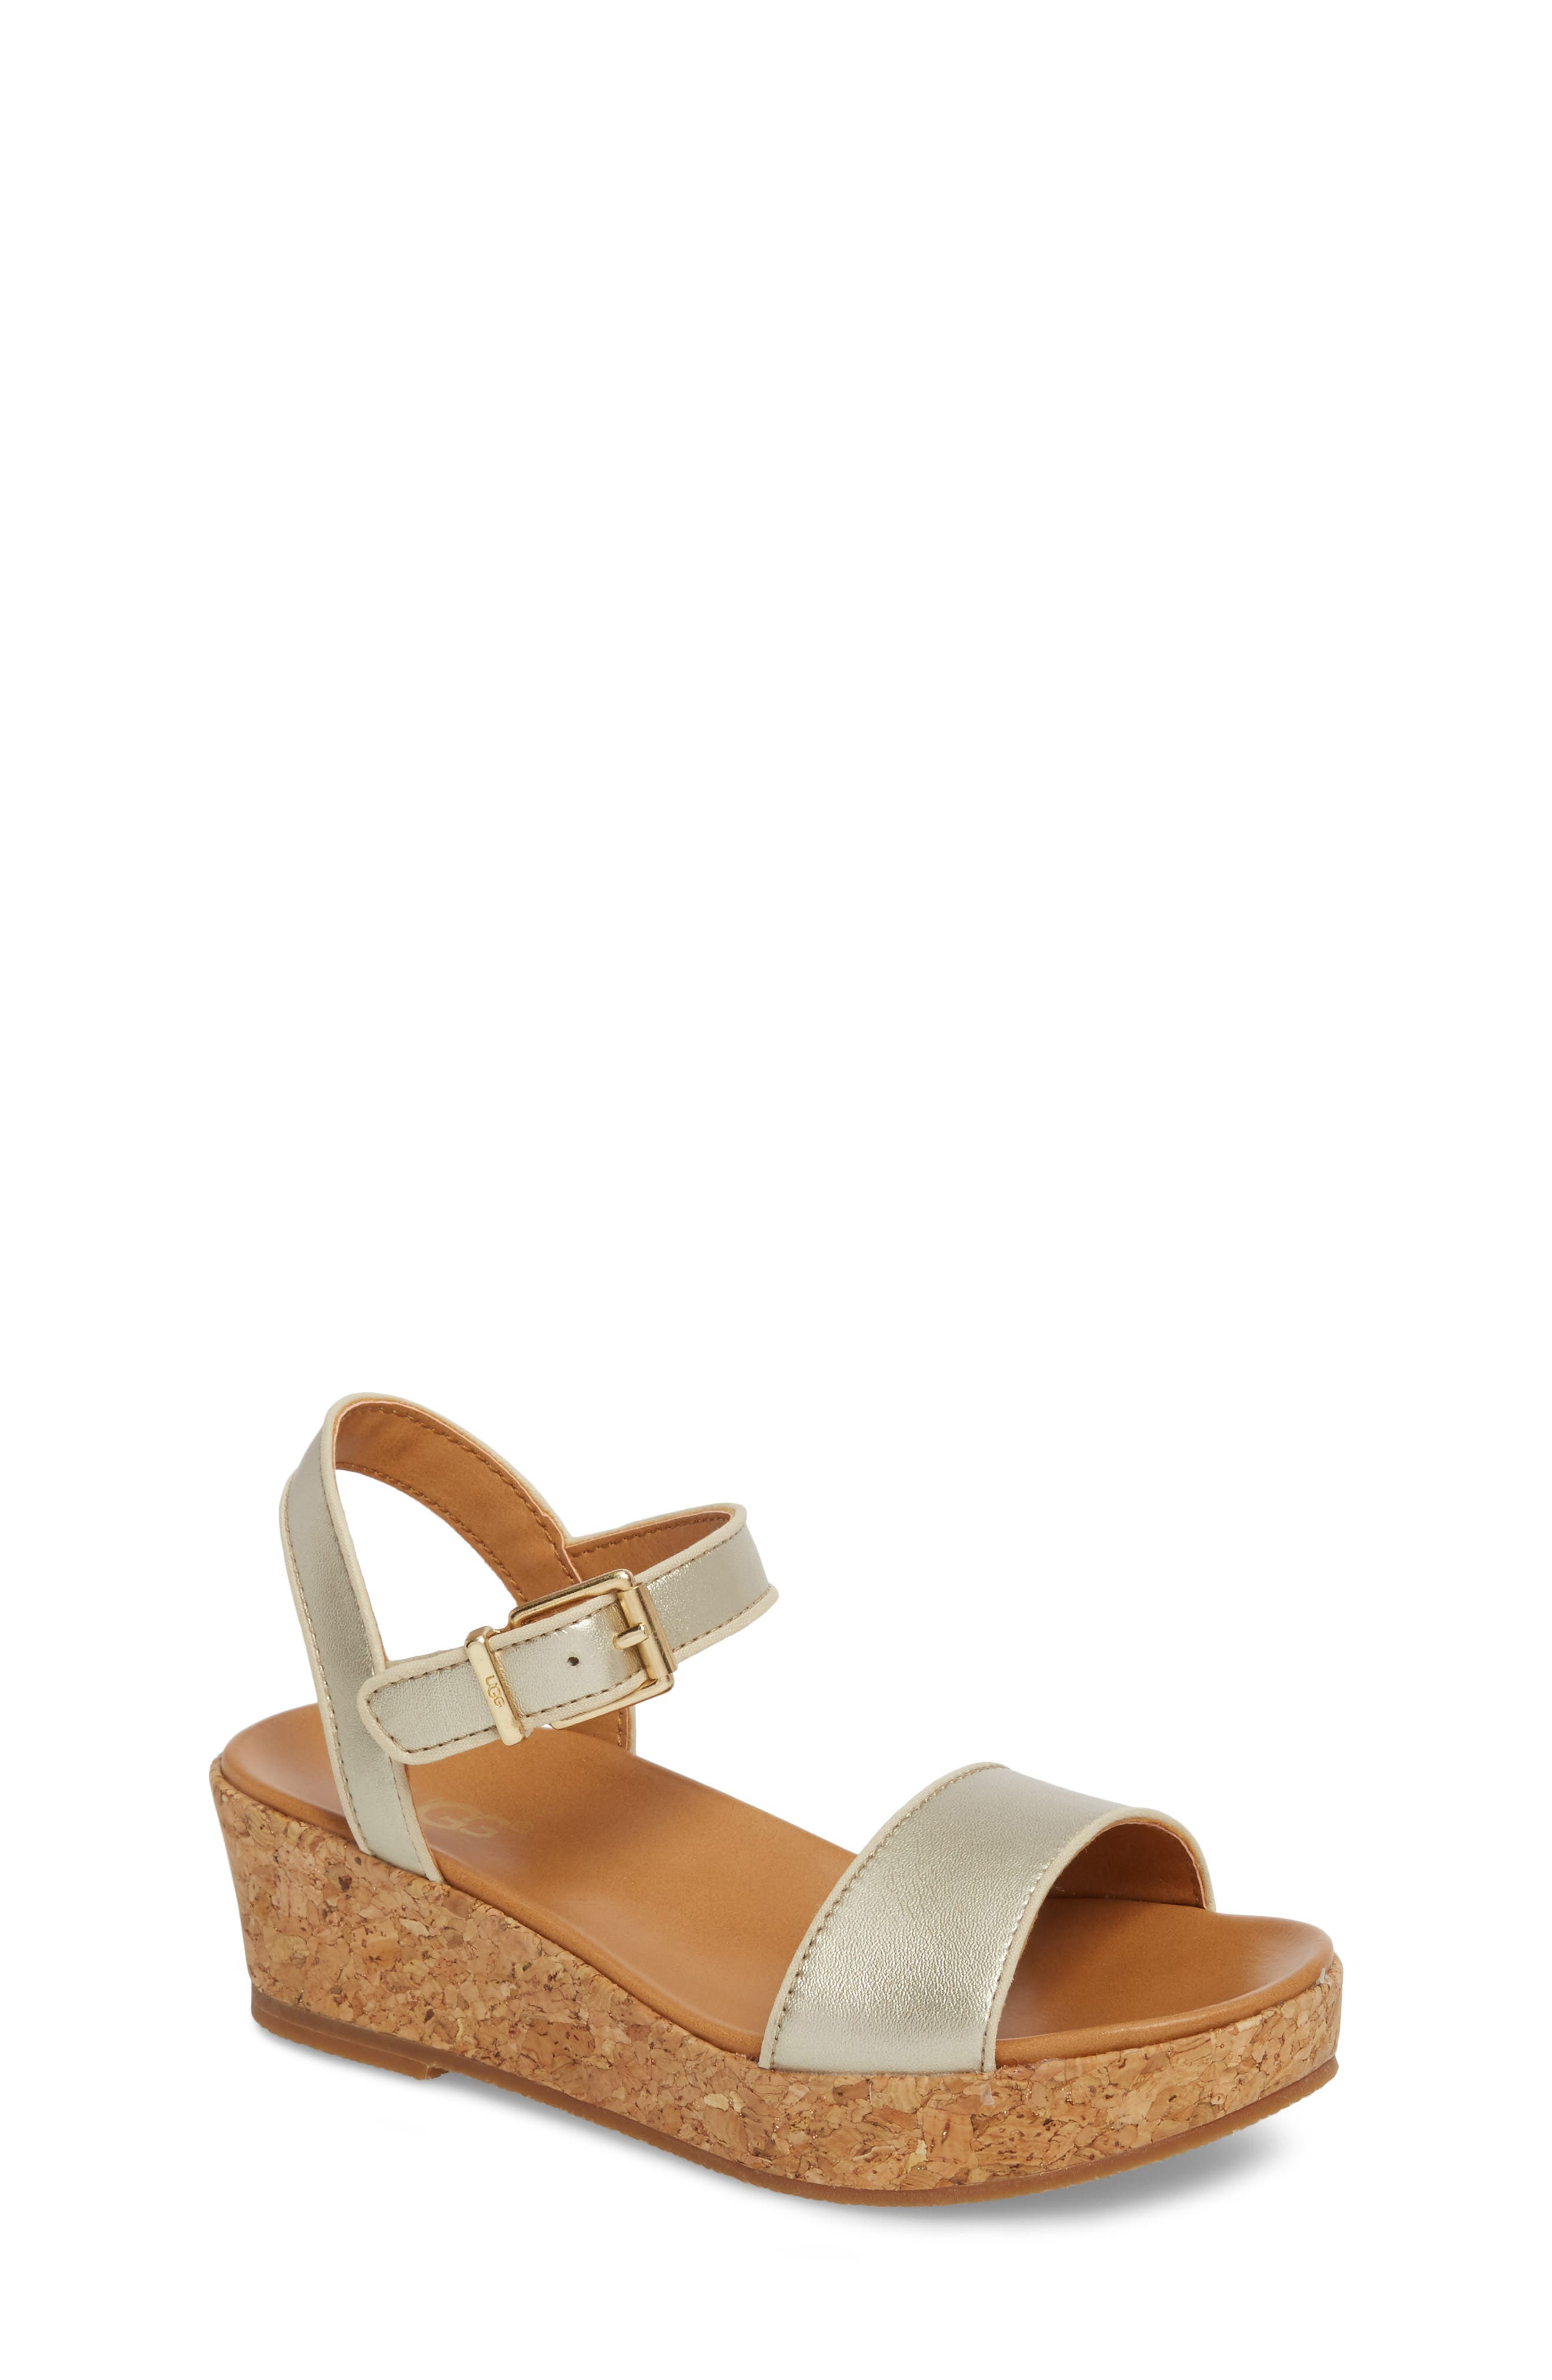 Milley Wedge Sandal,                             Main thumbnail 1, color,                             Gold